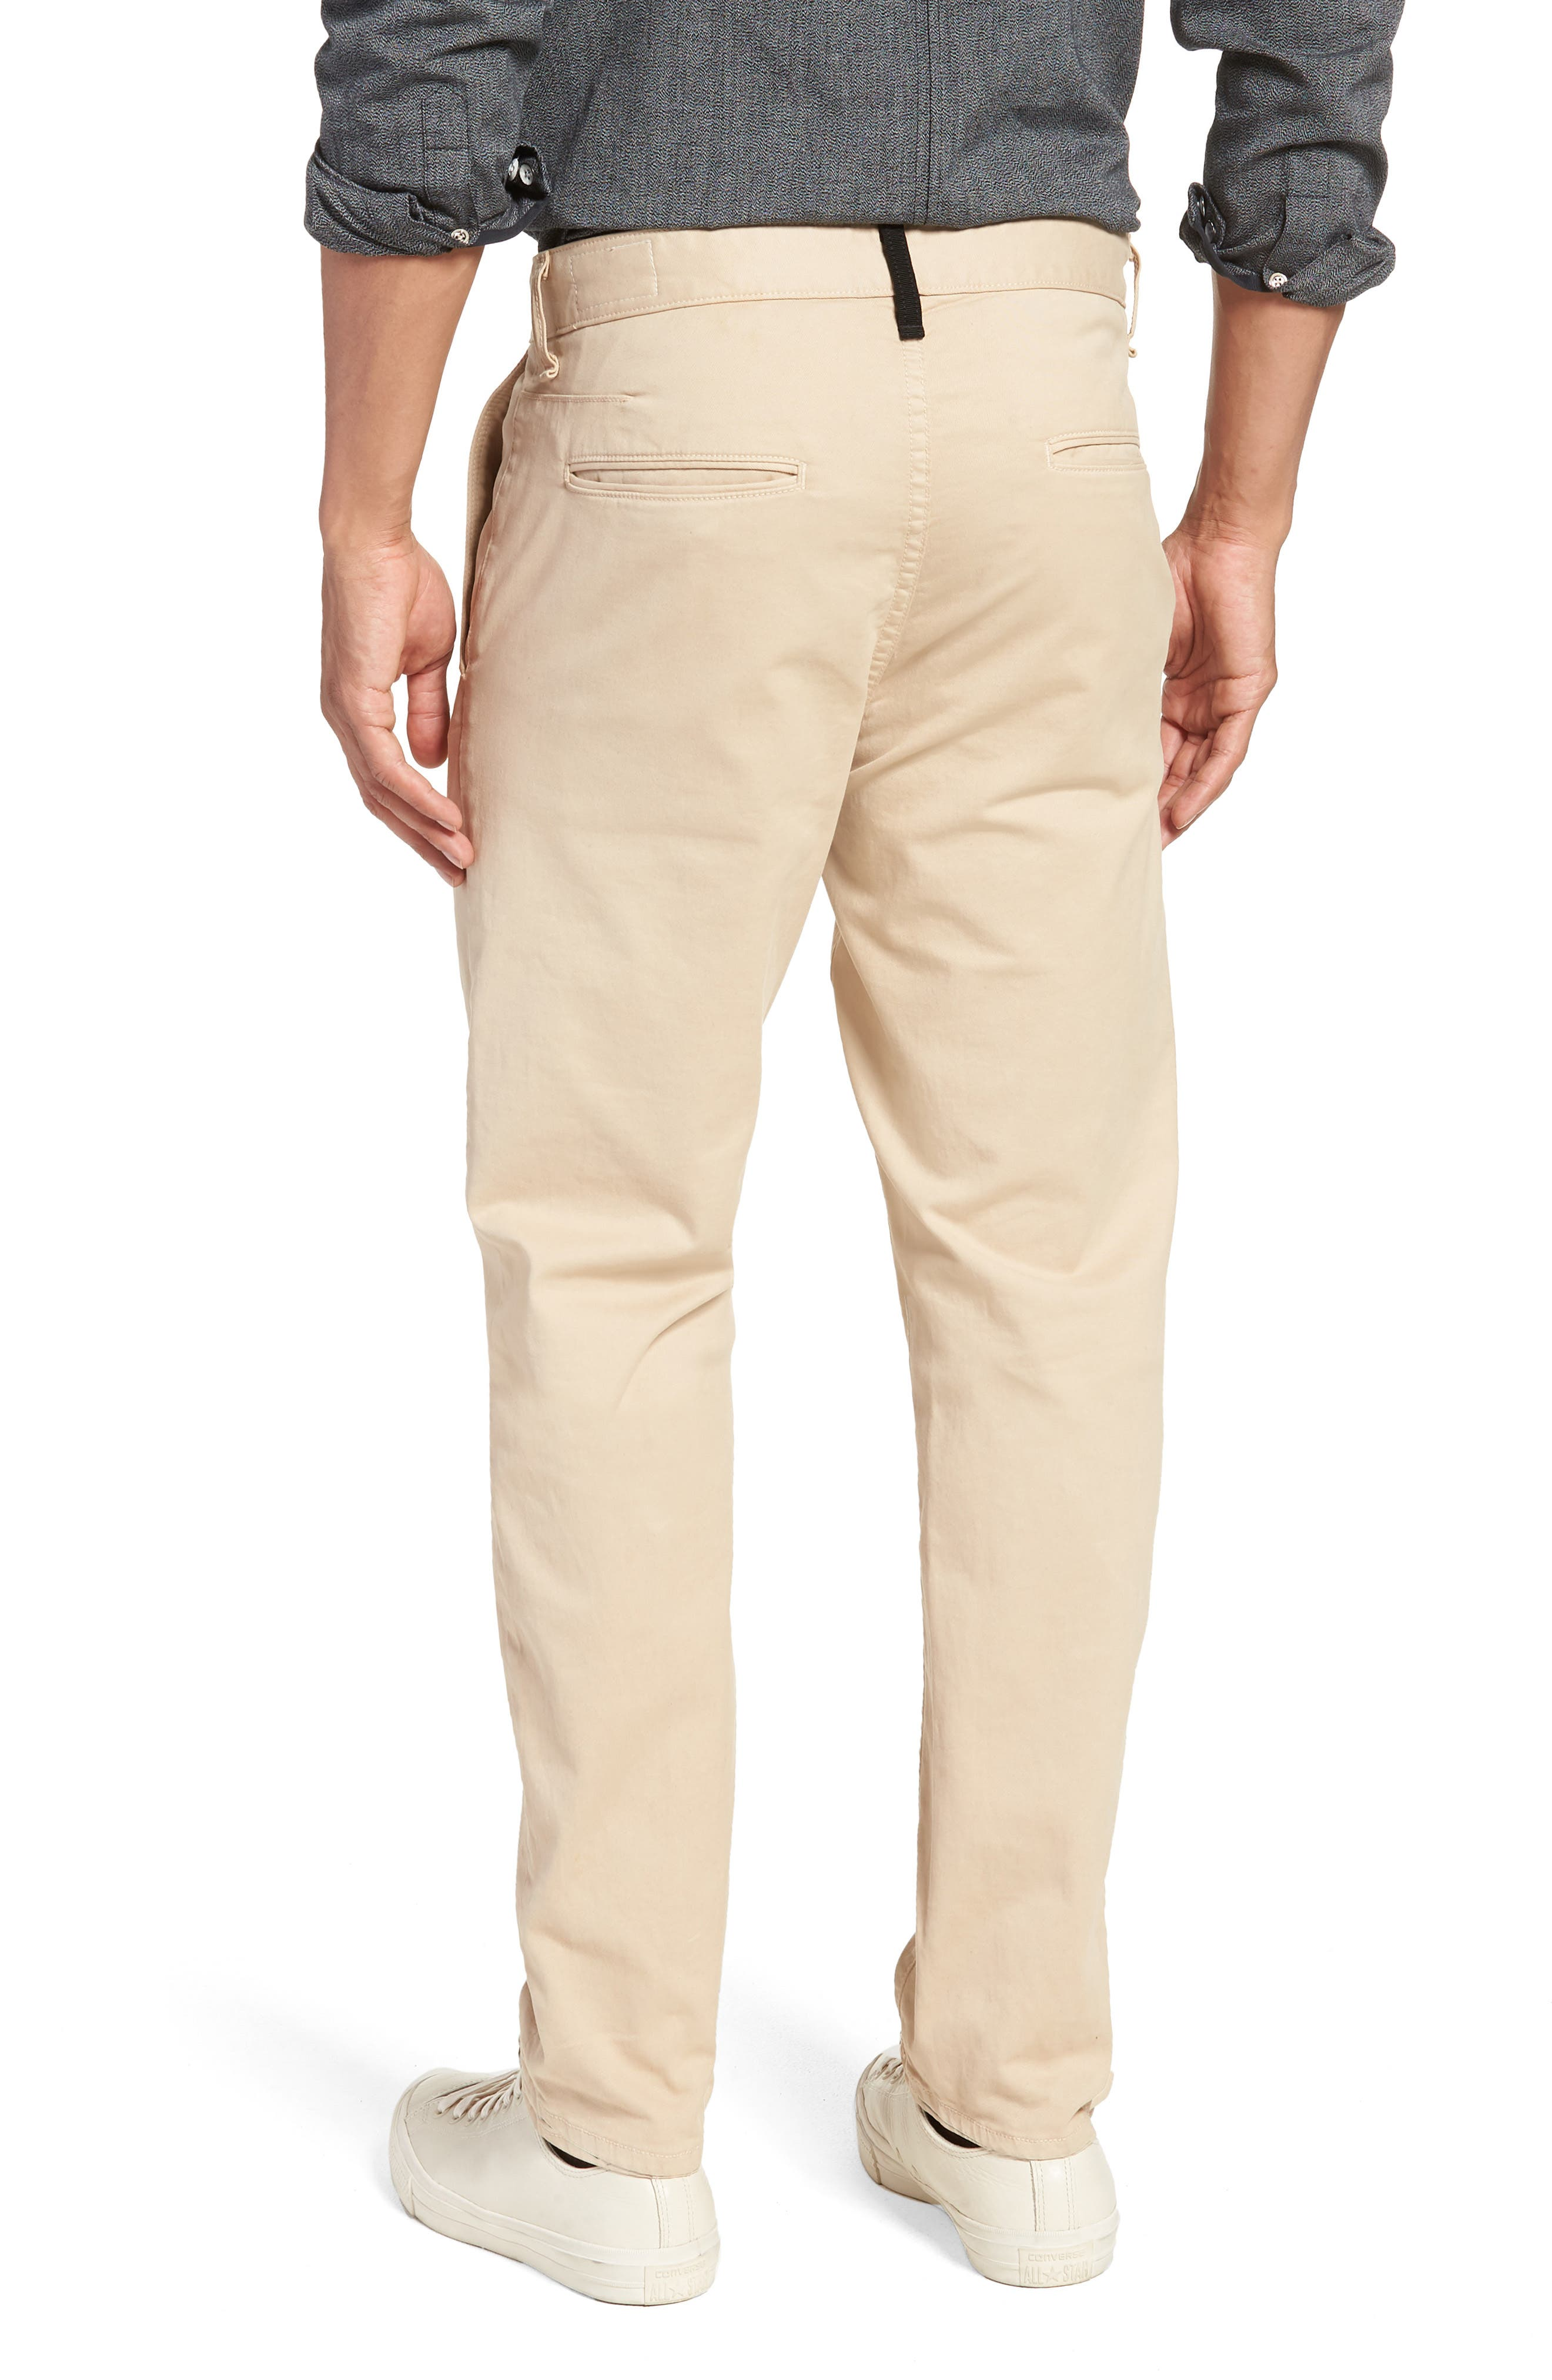 Fit 2 Chinos,                             Alternate thumbnail 2, color,                             BEIGE